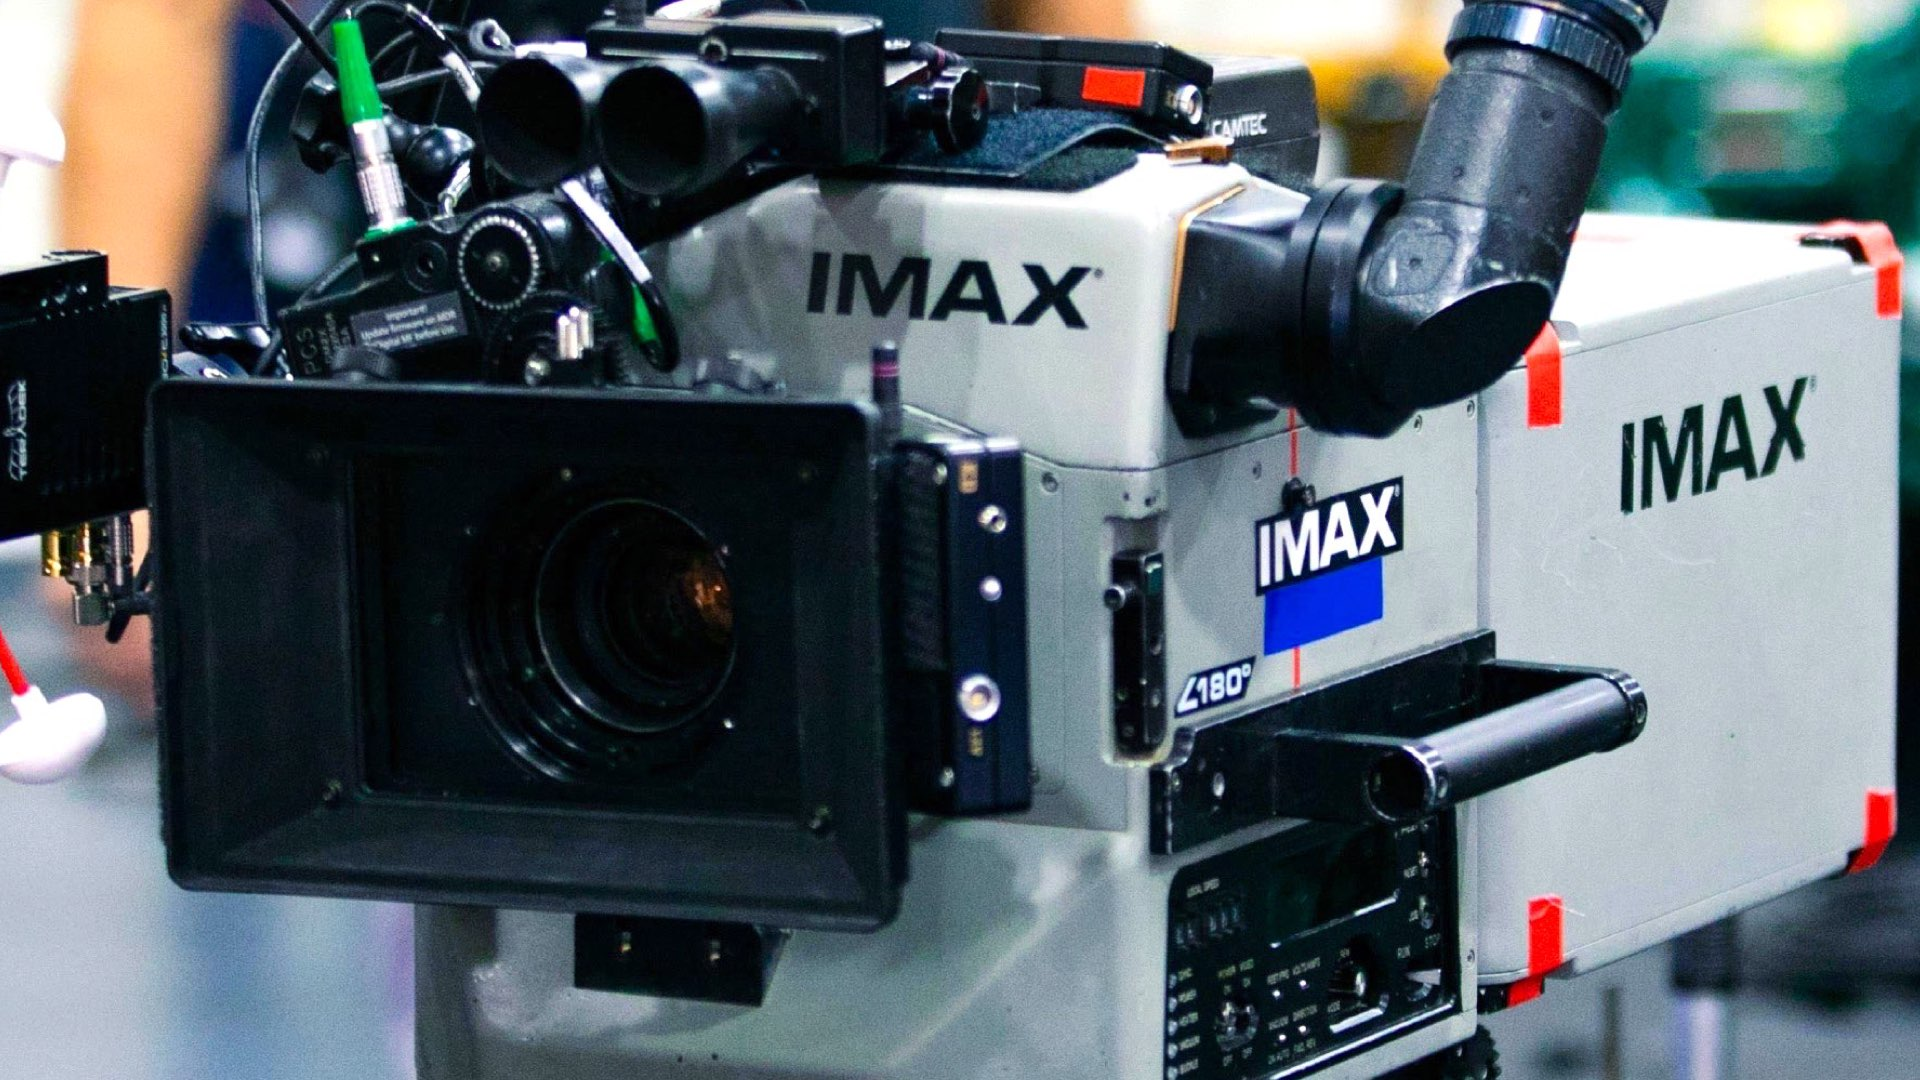 IMAX is Working to Make its Cameras More User Friendly